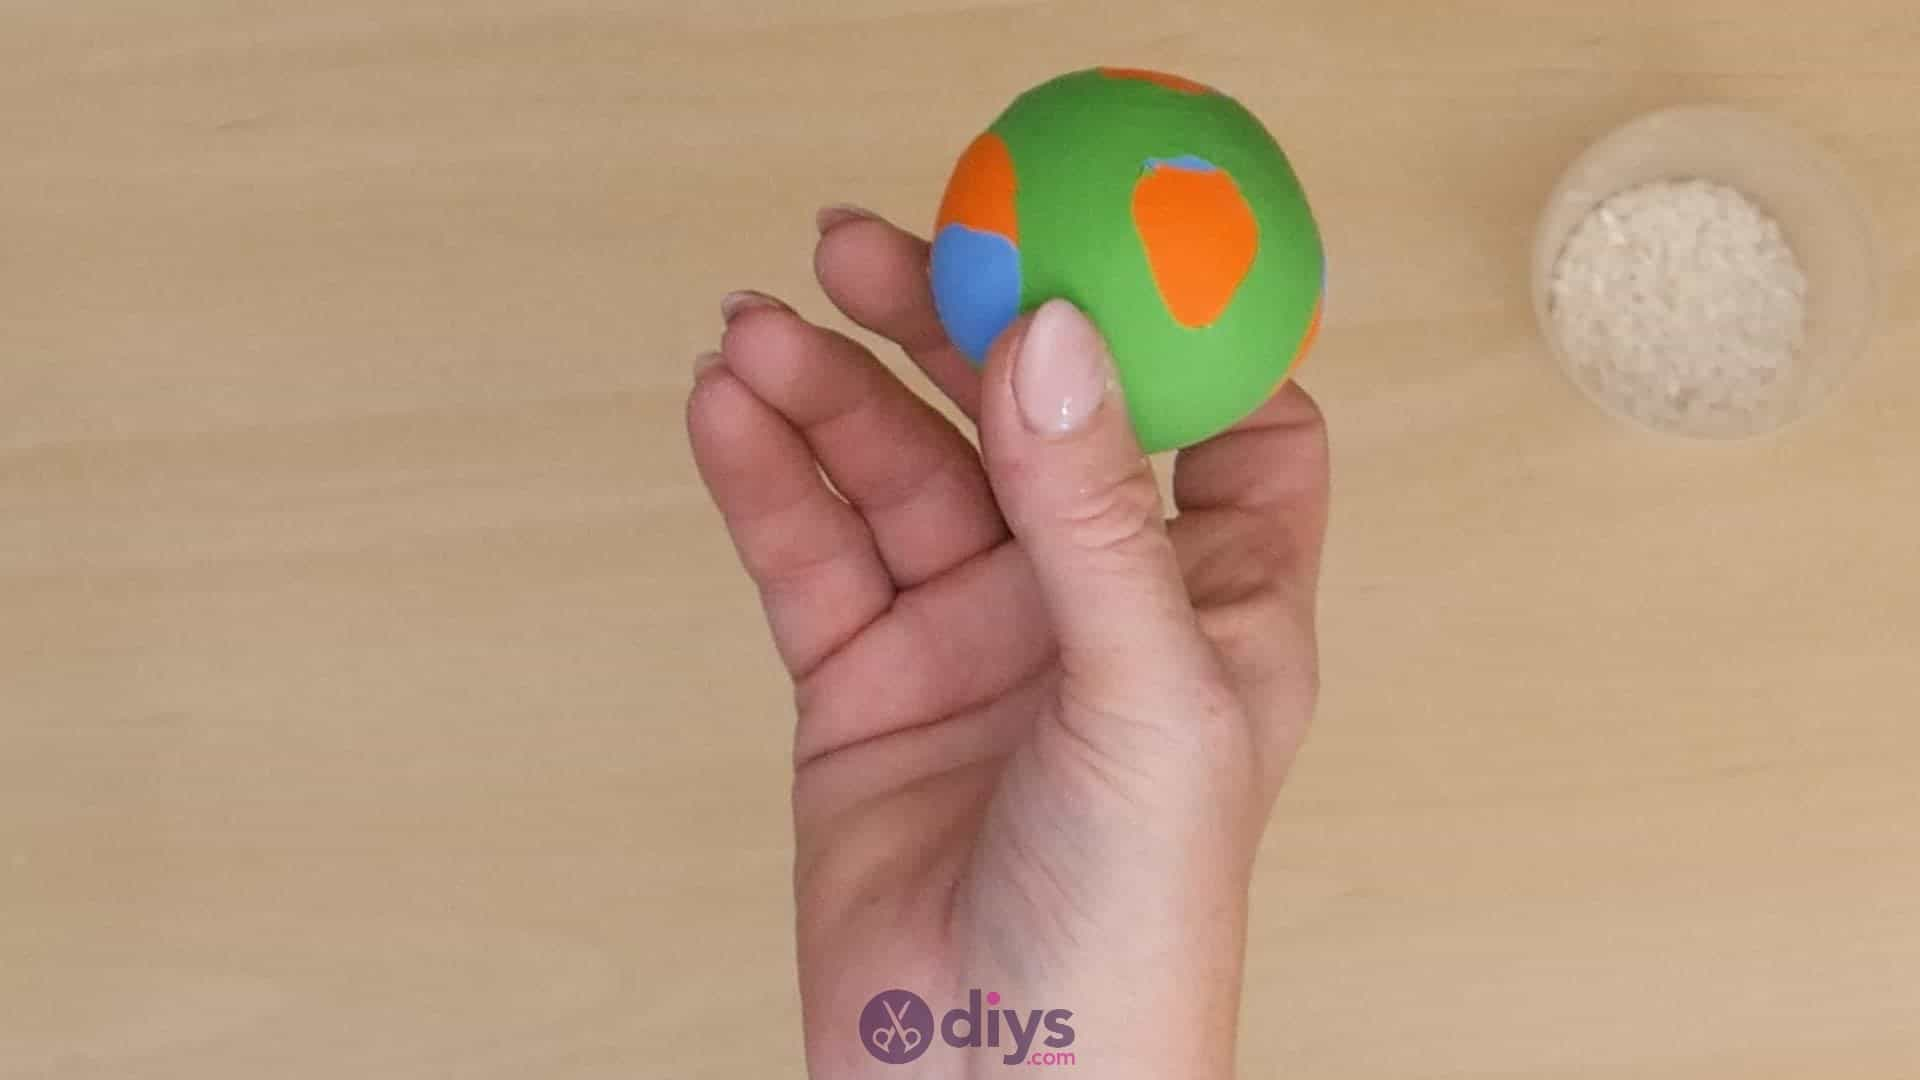 Diy juggling balls step 6a